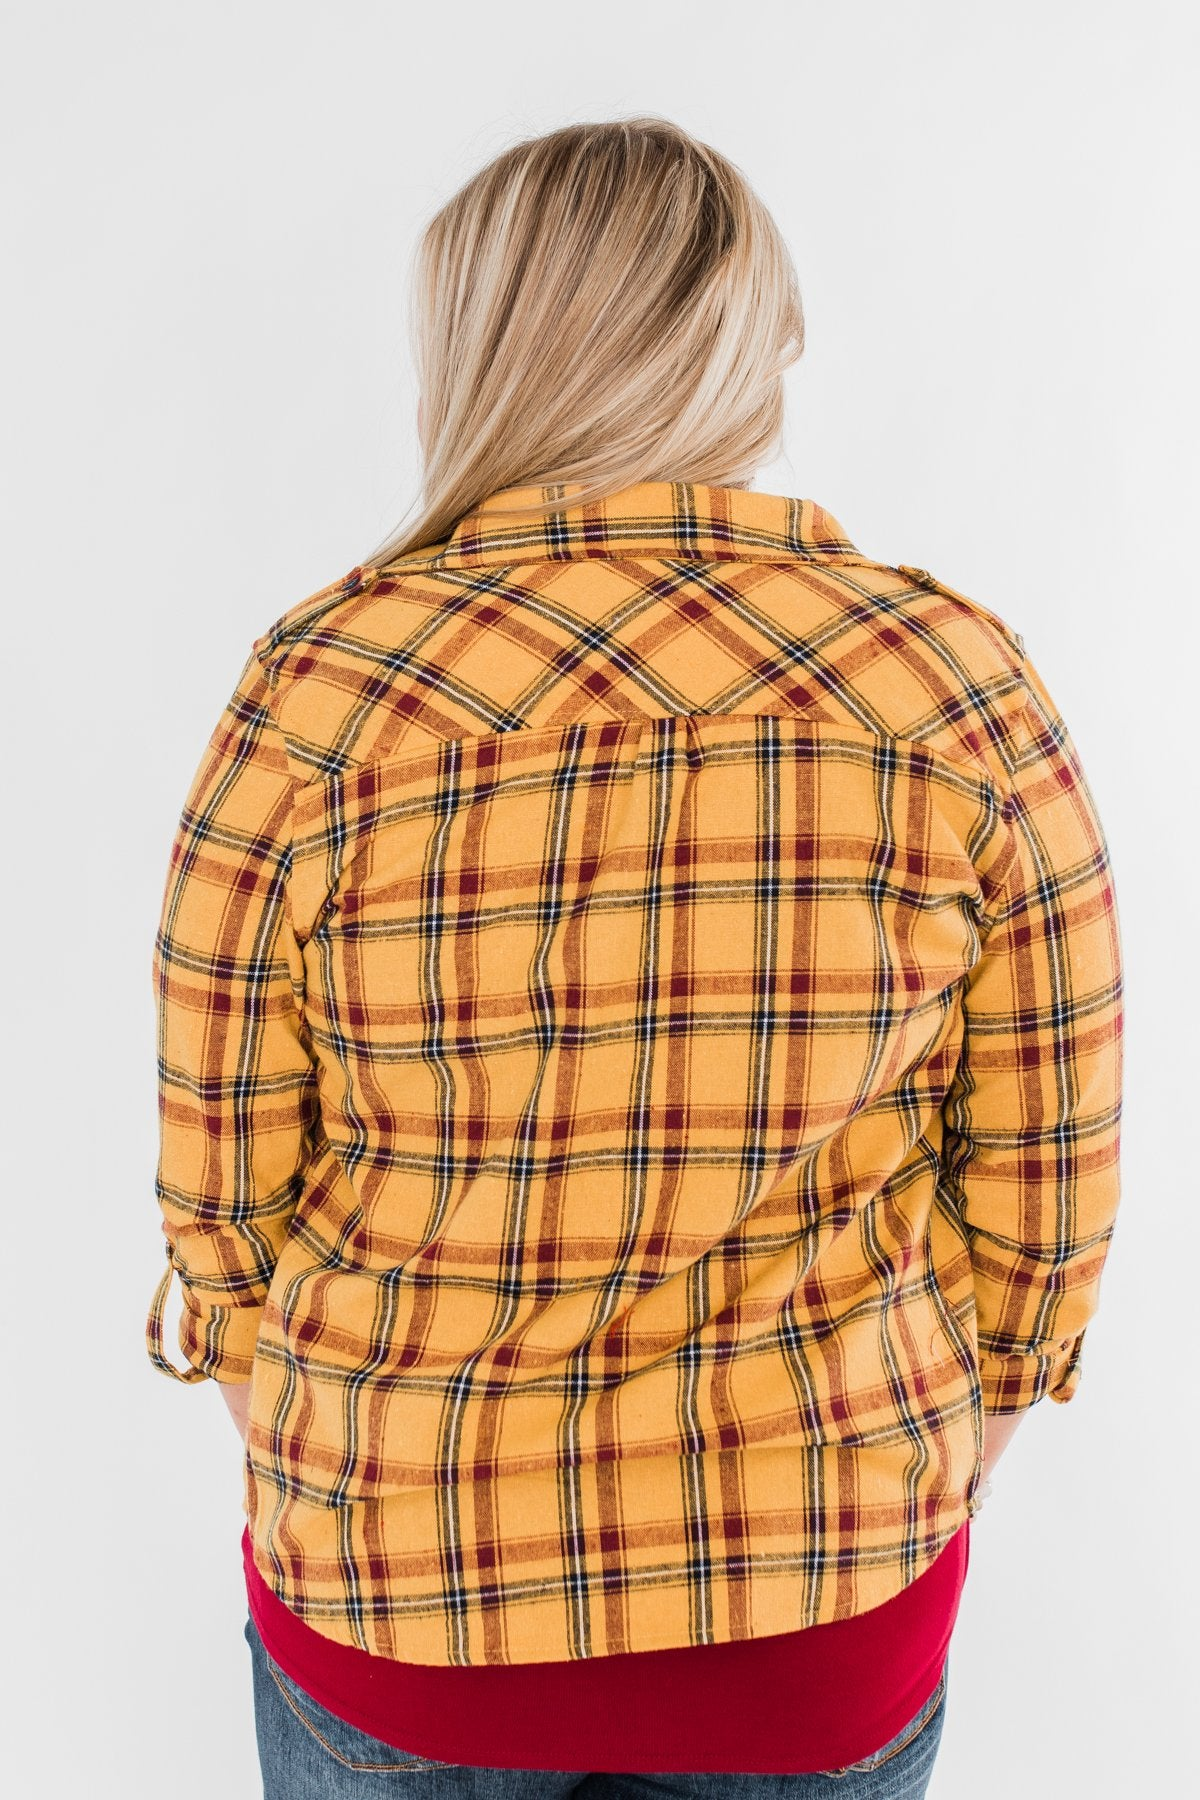 I've Been Told Long Sleeve Plaid Top- Mustard